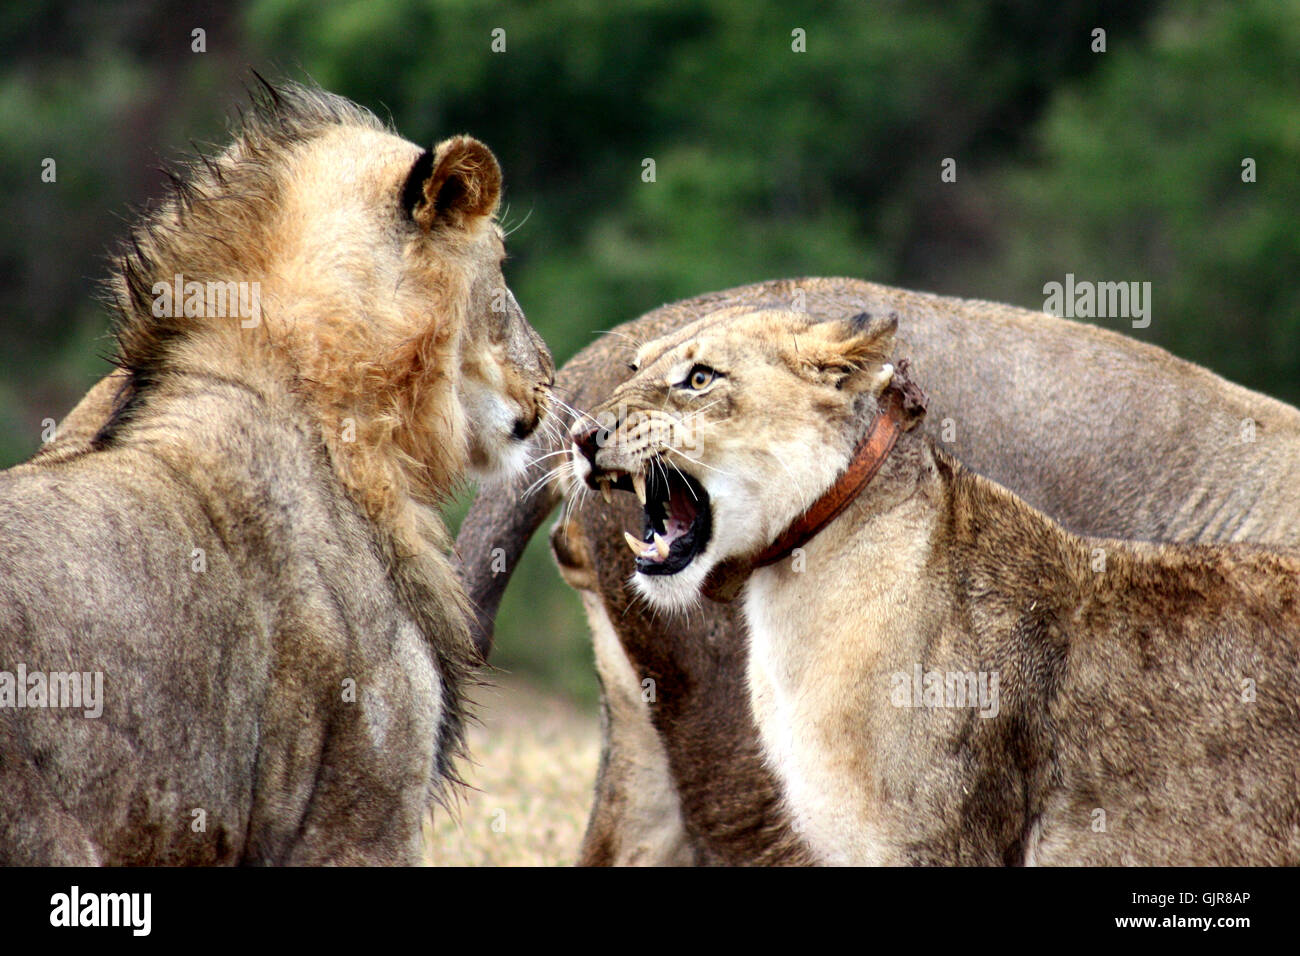 Lioness Snarling - Stock Image